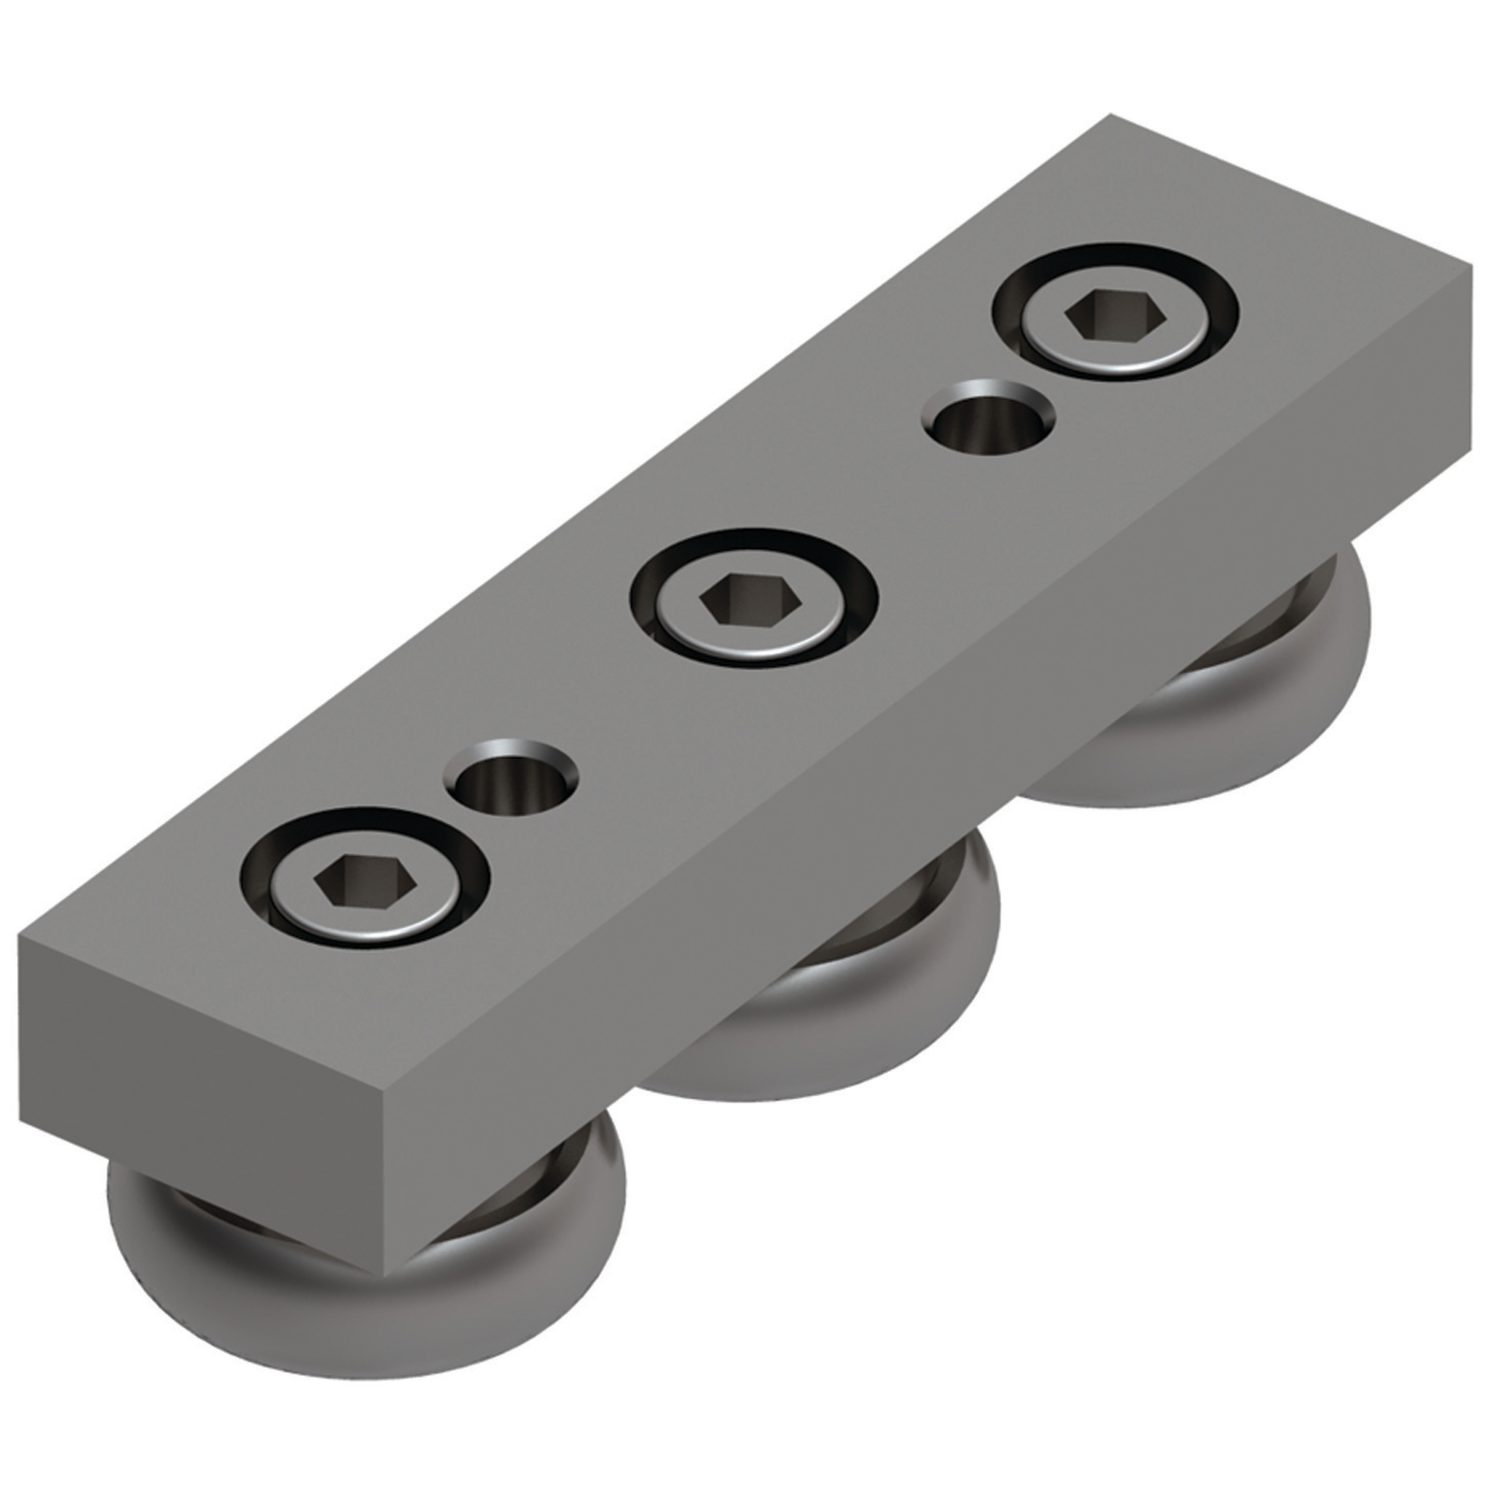 Product L1970.SB, Solid Body Steel Sliders for T rail (master) /